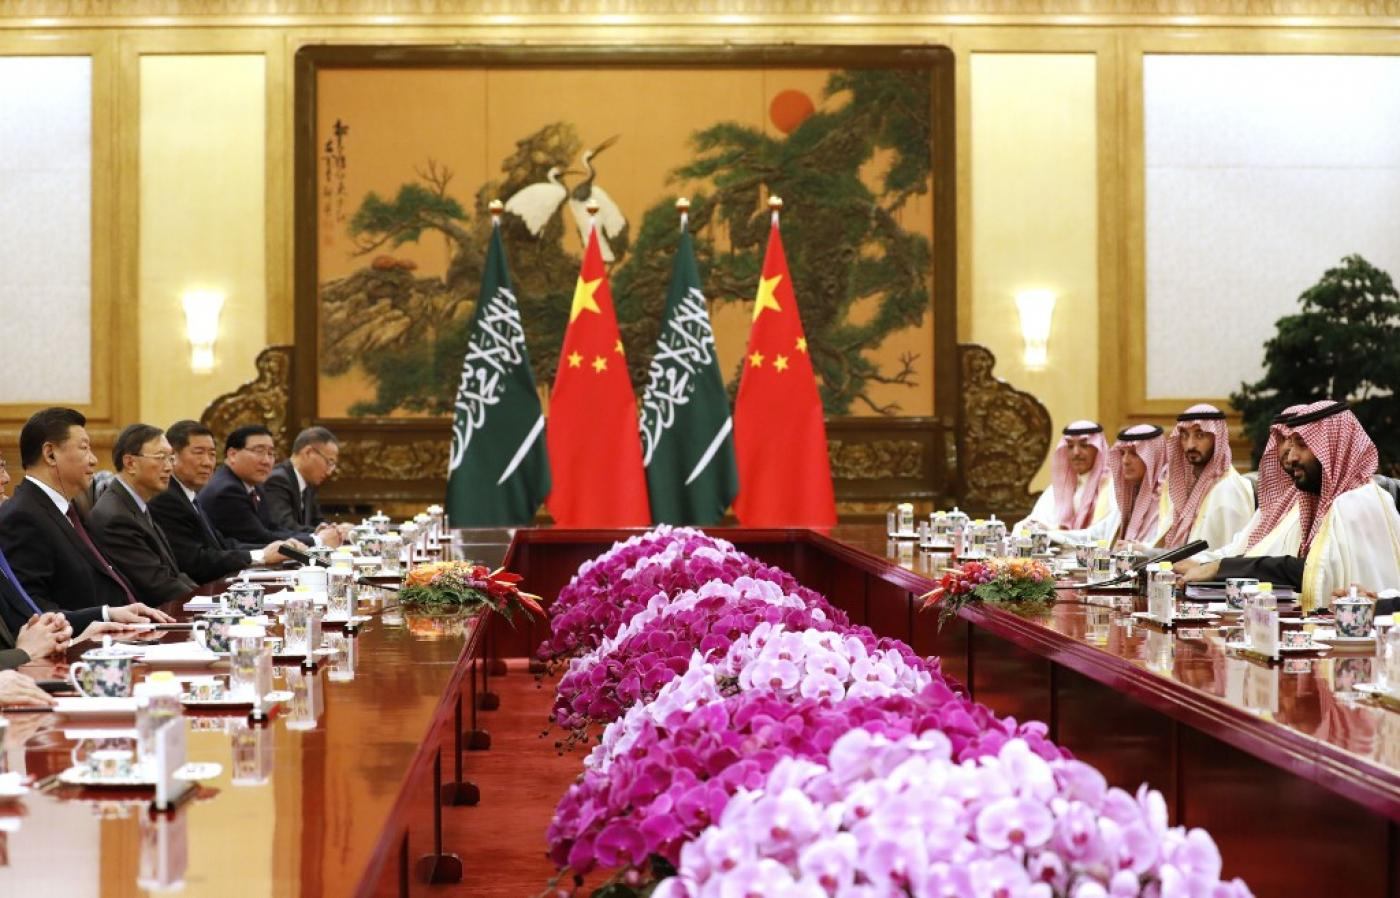 China 'helping Saudi Arabia to develop missile arsenal'